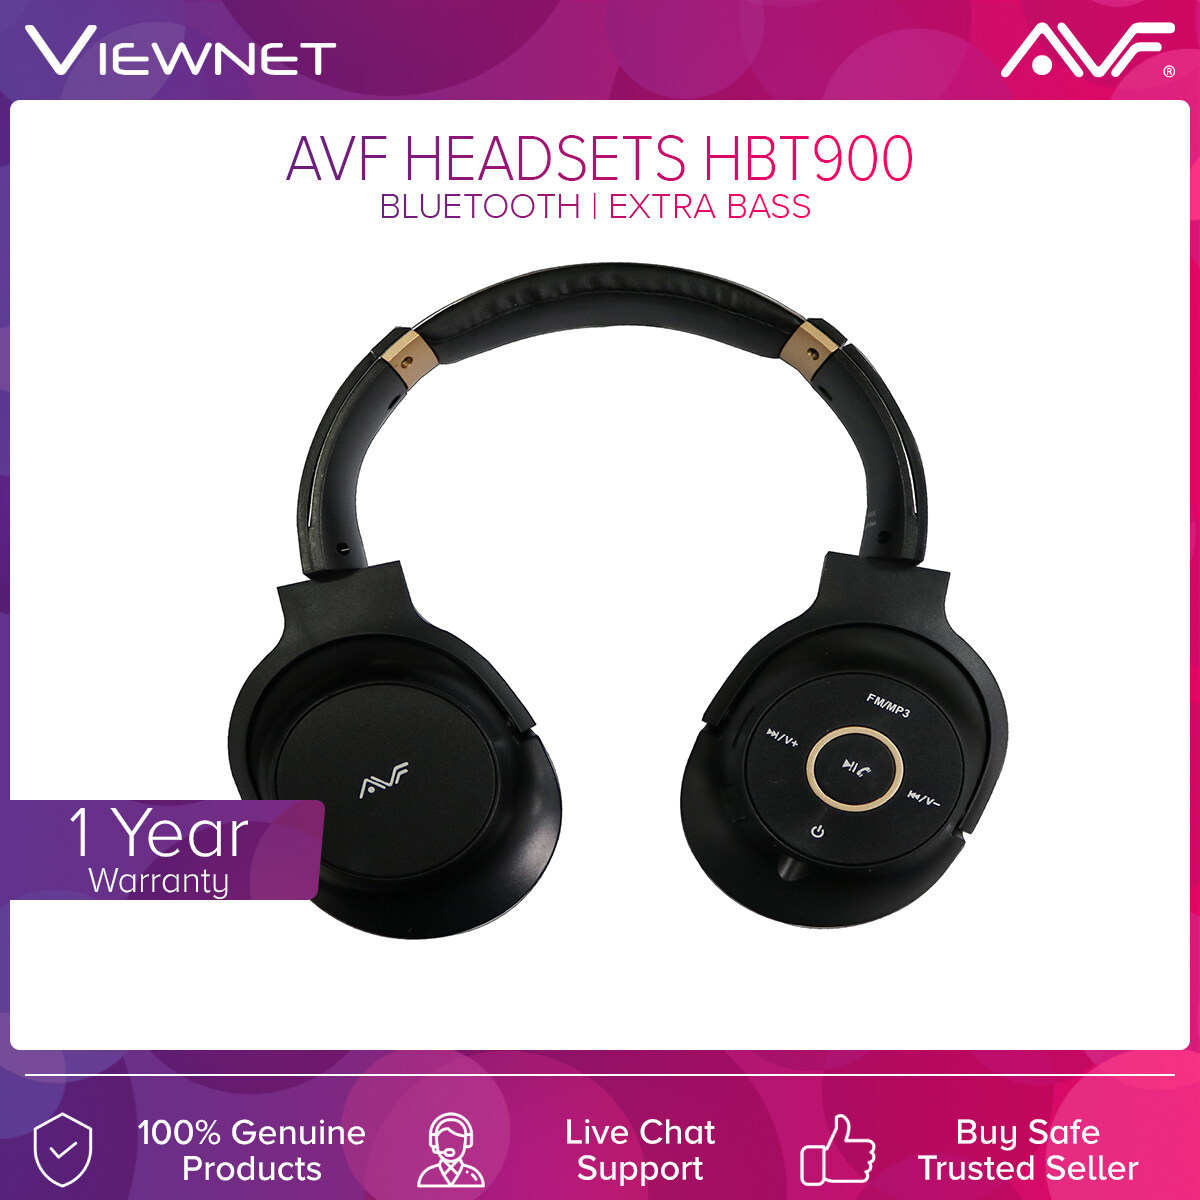 AVF Wireless Headsets HBT900 with Bluetooth, AUX-In Mode, TF Card Mode, FM Radio Mode, 5 Hours Battery Life, Power Save Mode